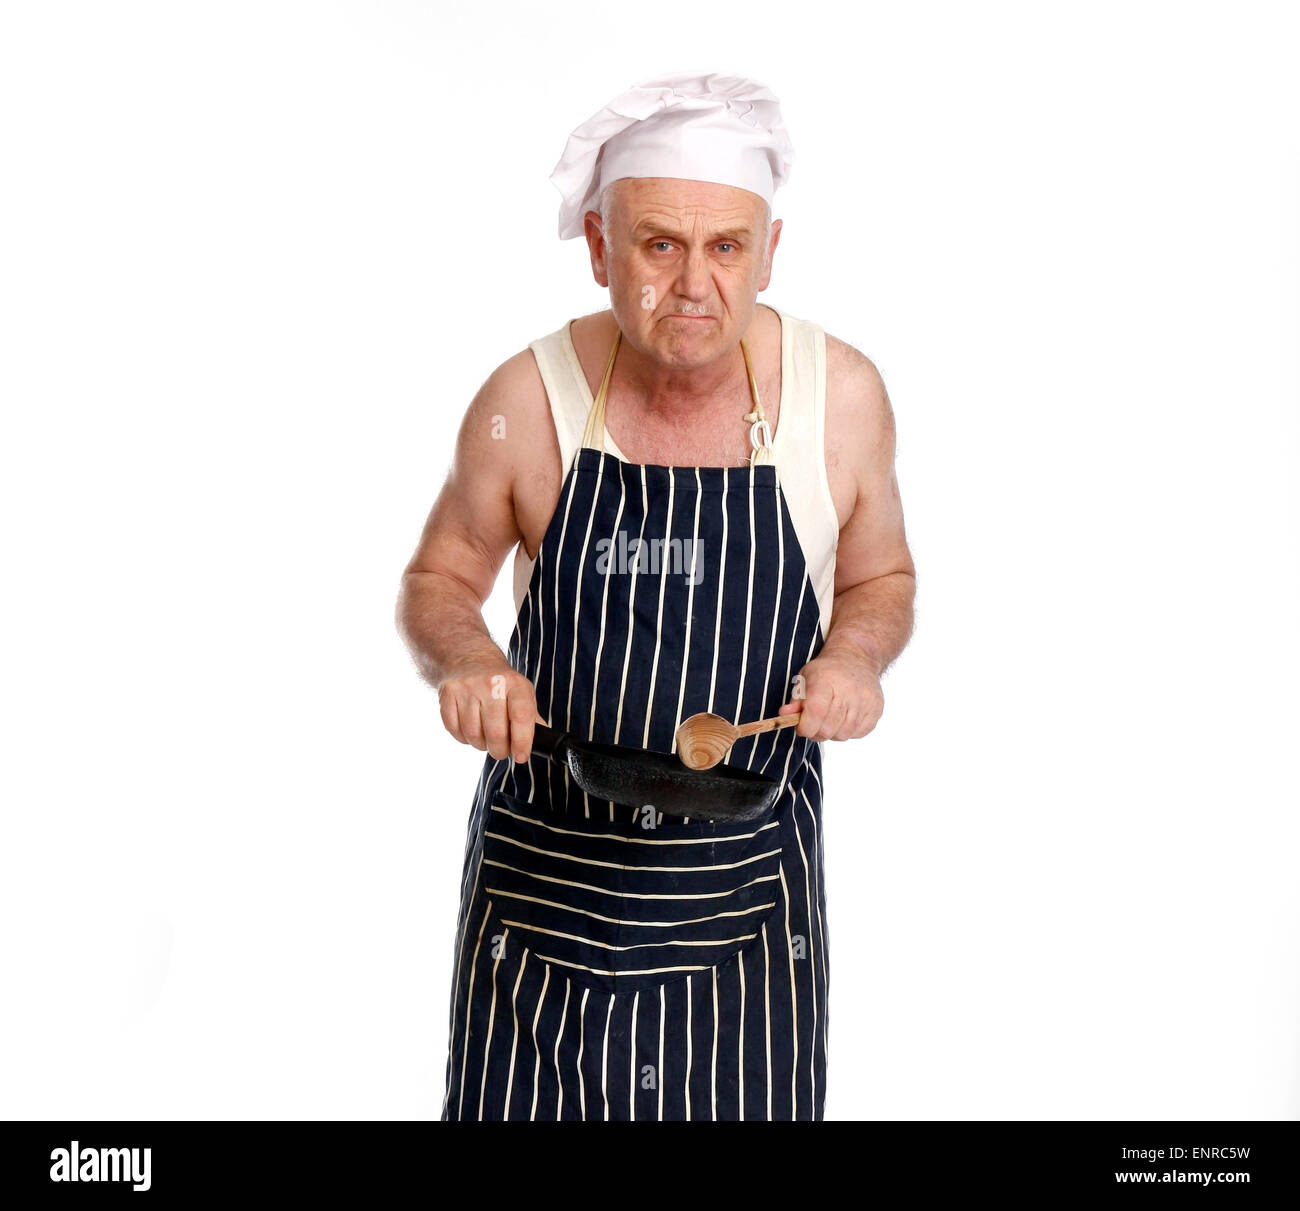 Grumpy Foul Tempered Man As A Low Grade Chef Or Cook In A